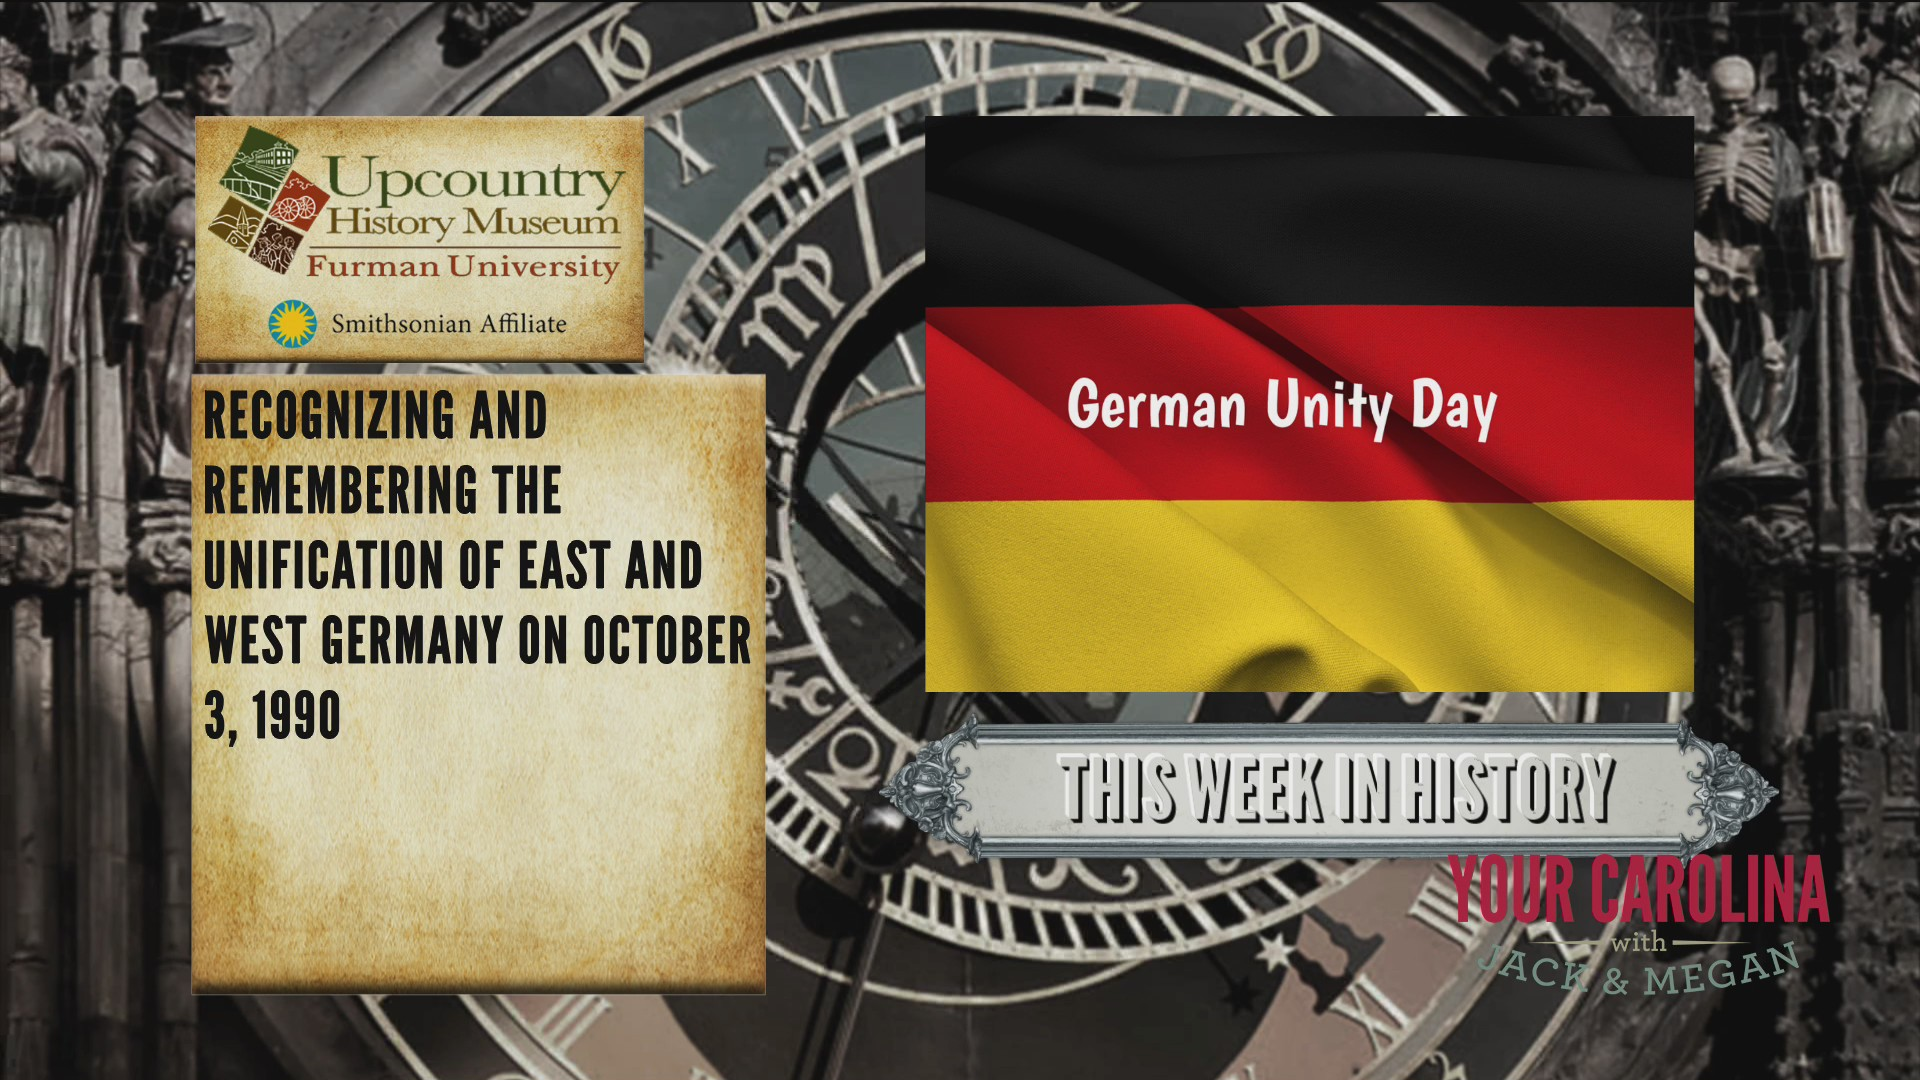 This Week In History - German Unity Day